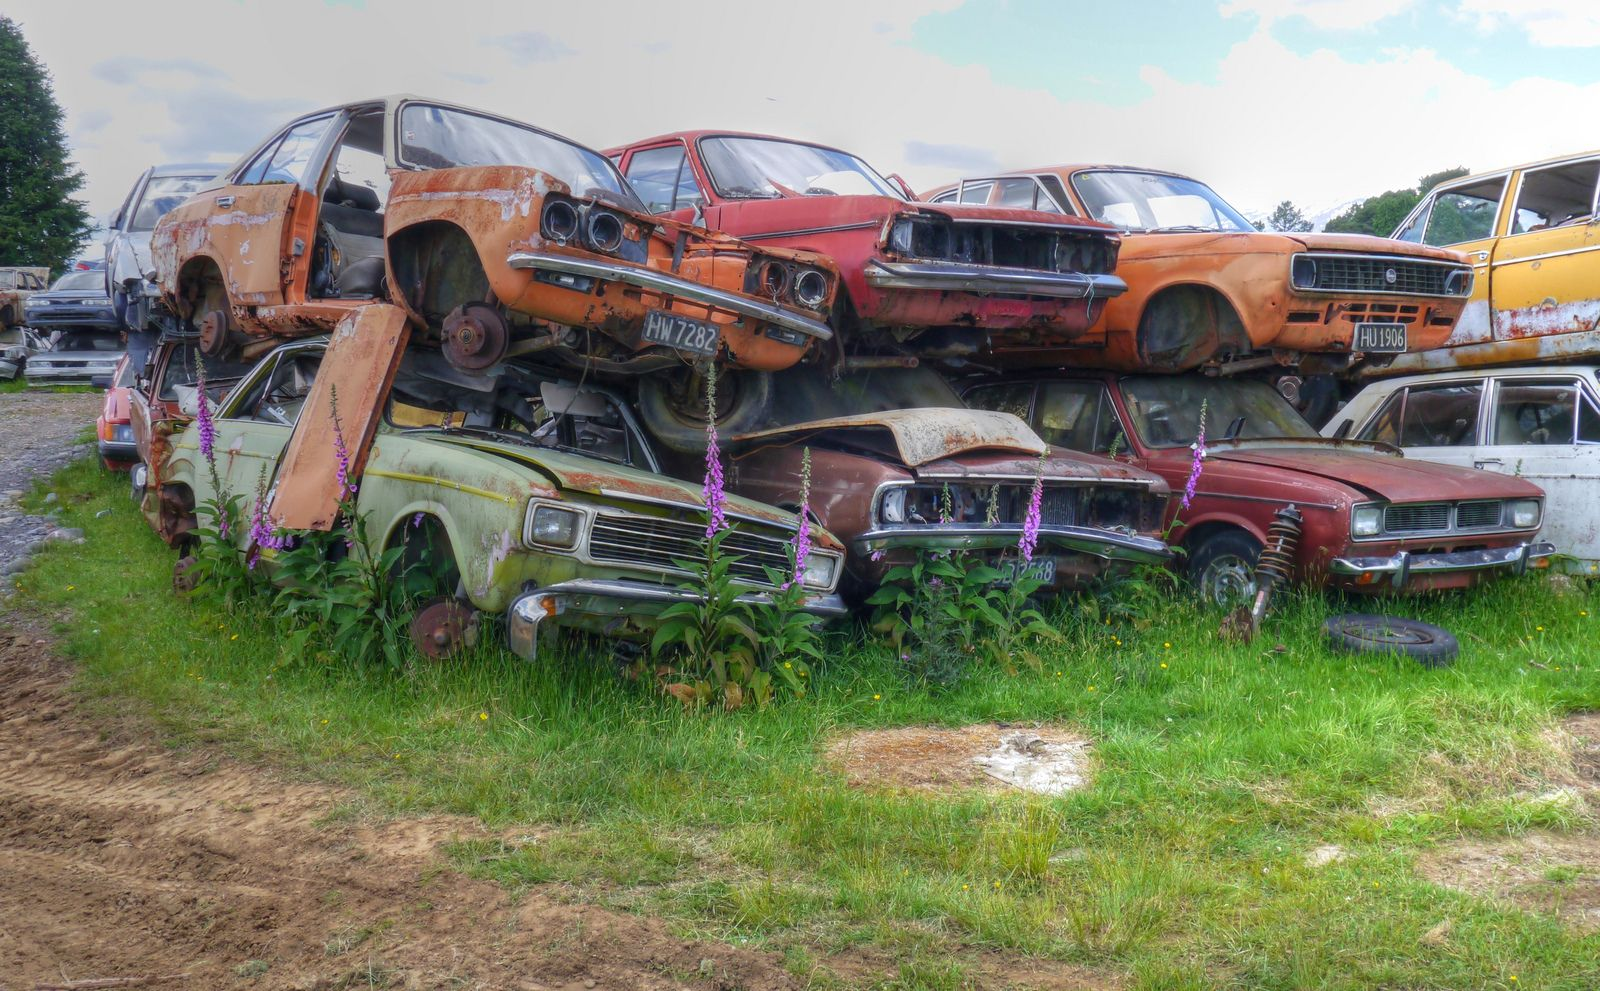 Hillman | Scrap yards | Pinterest | Abandoned cars, Barn finds and Cars